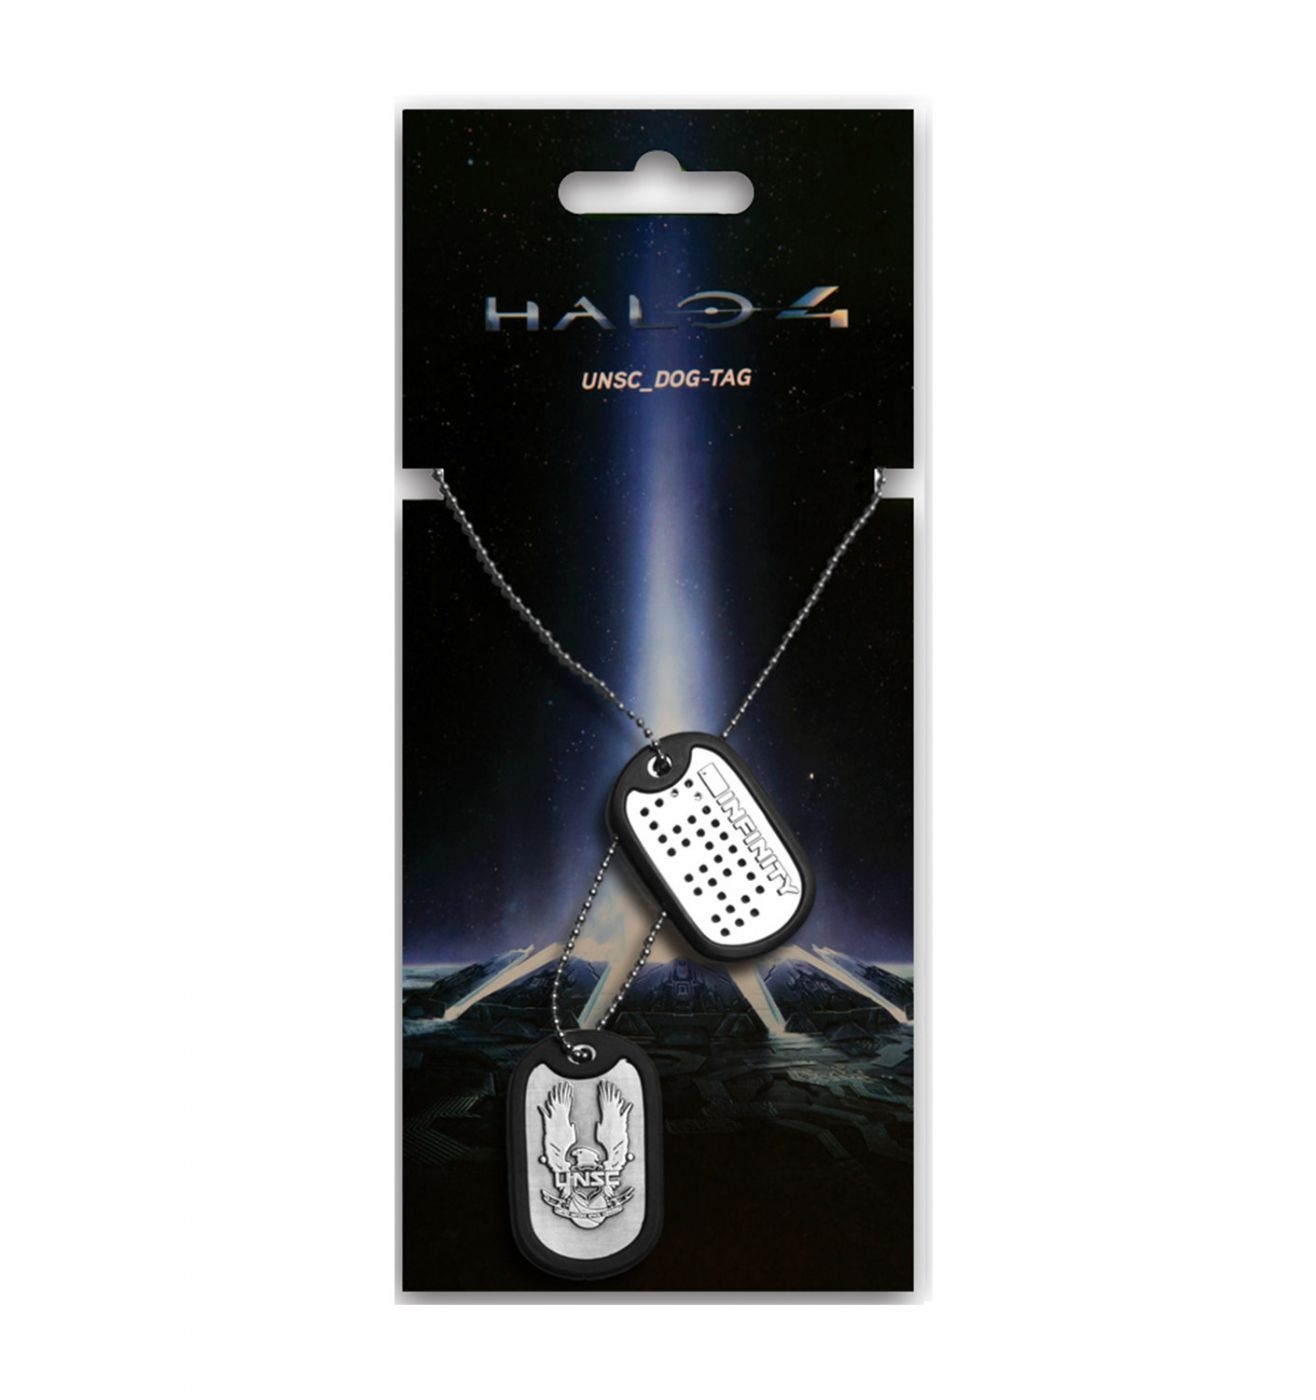 Halo 4 UNSC Dogtags